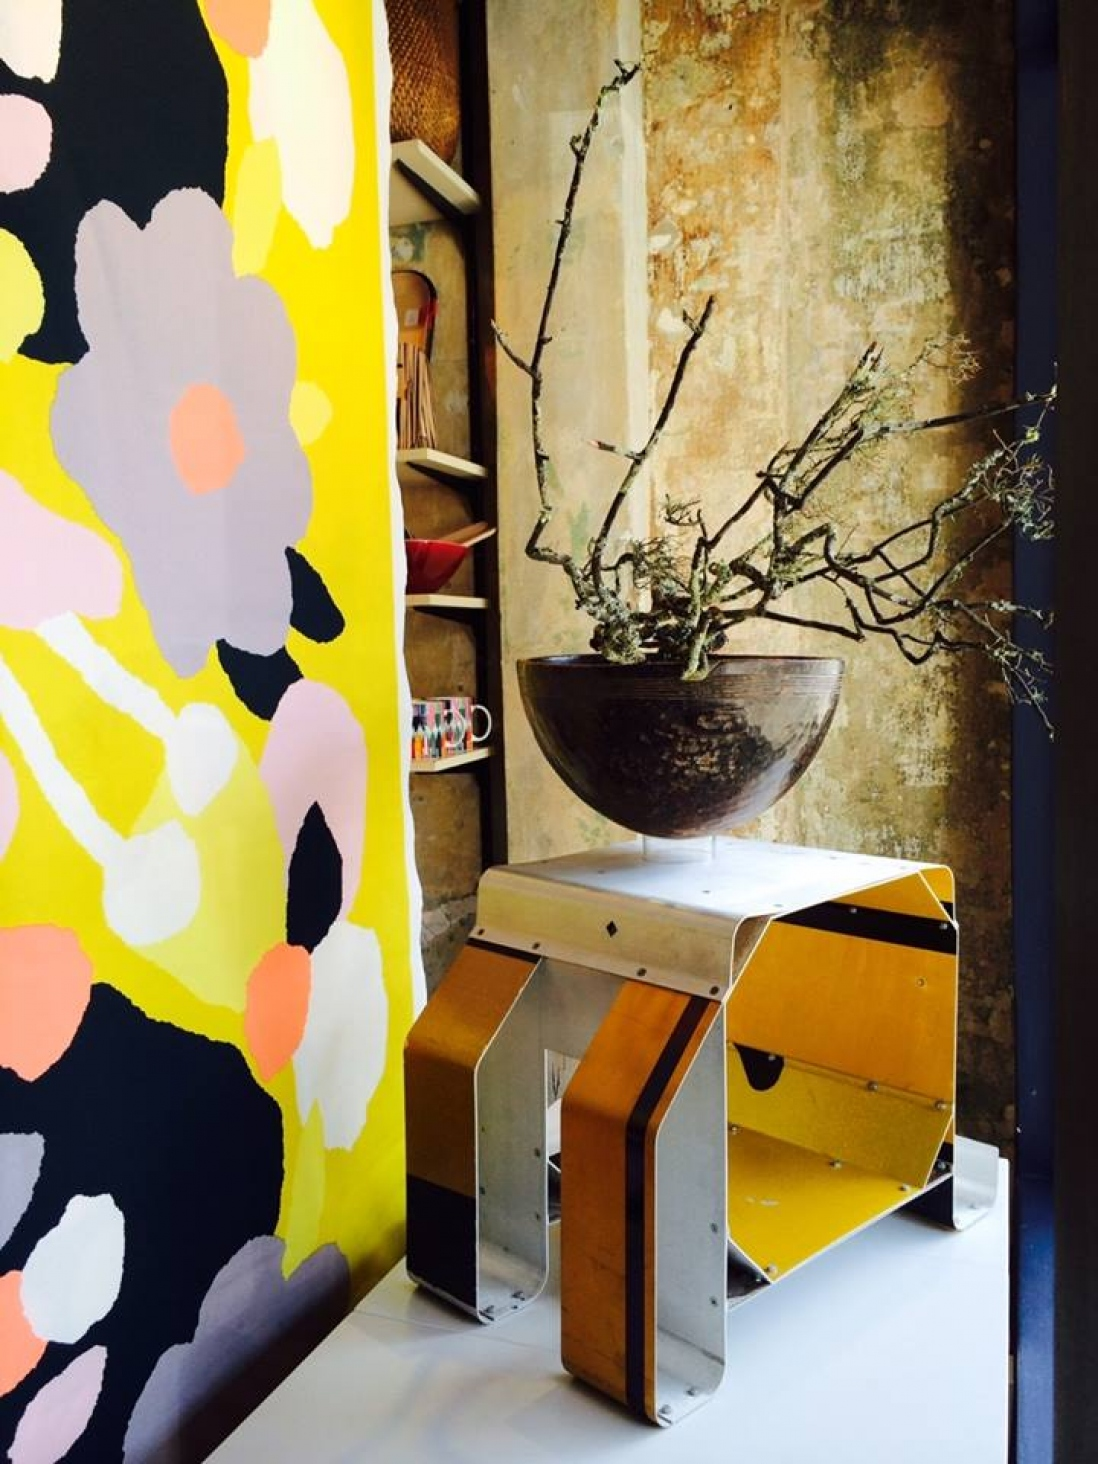 Vintage African wooden bowl on metal 'Sign Stool' by Trent Jansen with Marimekko printed cotton backdrop.